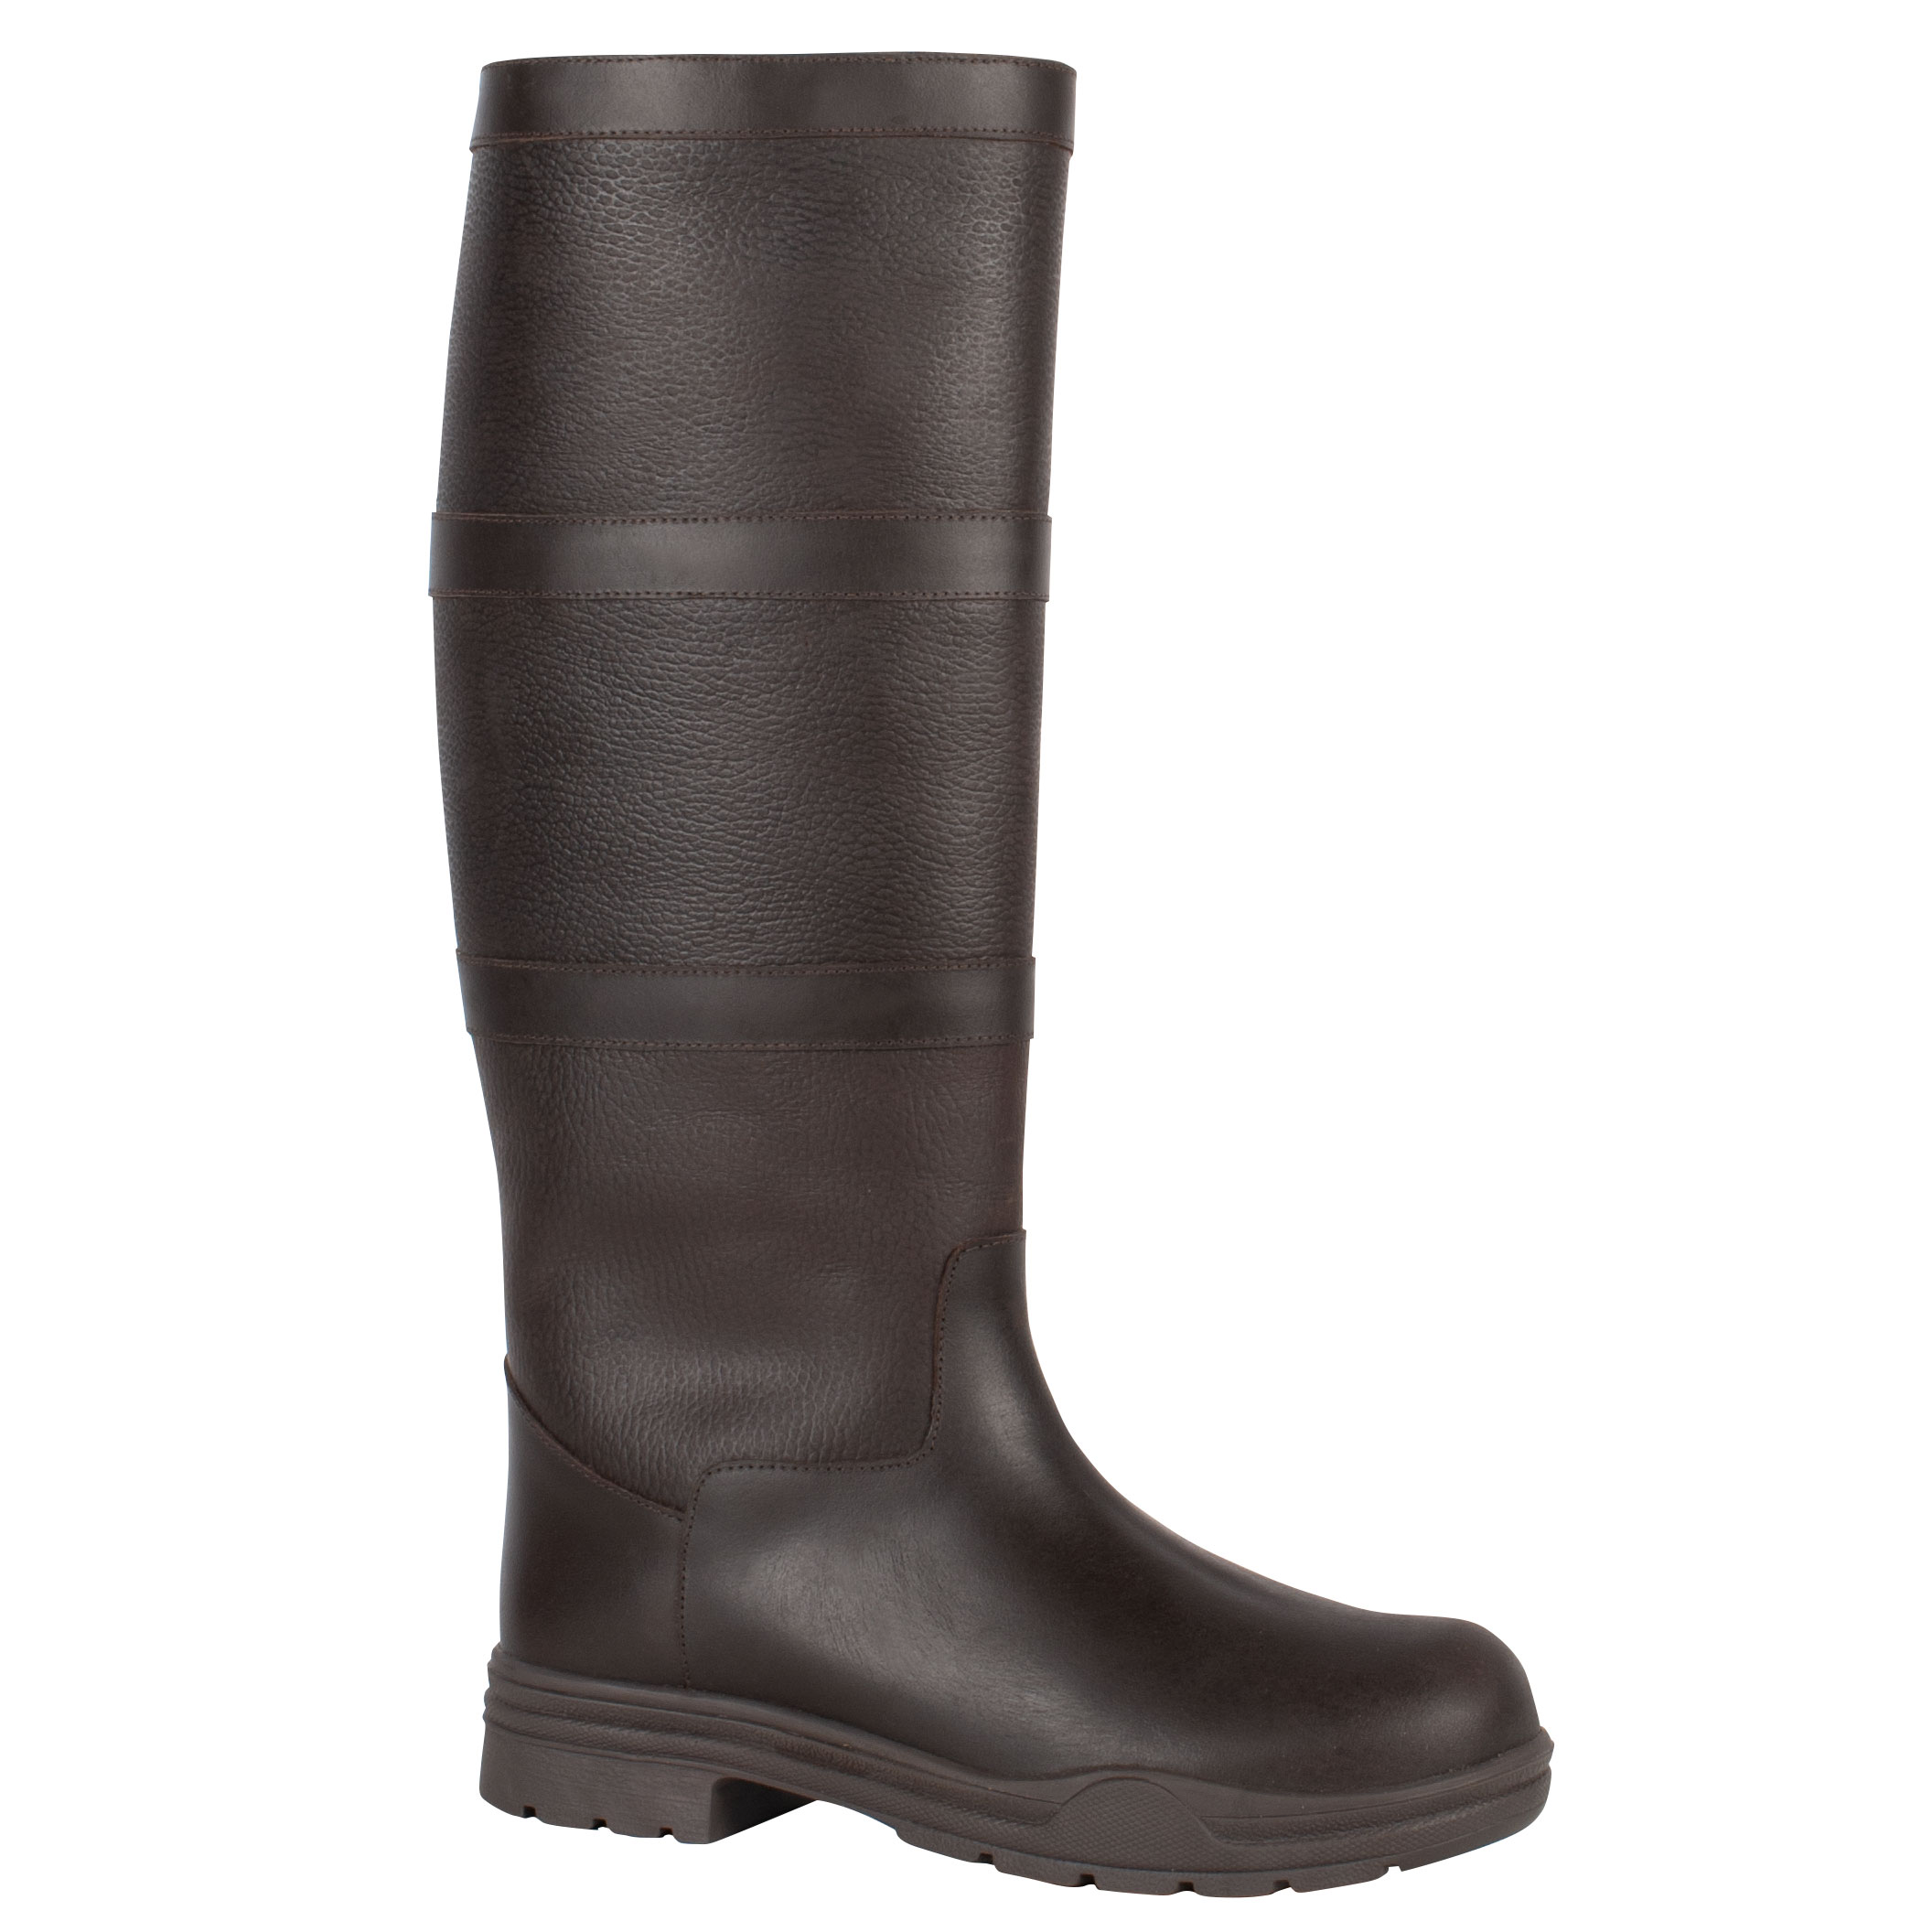 Mondoni Country Boots donkerbruin maat:38